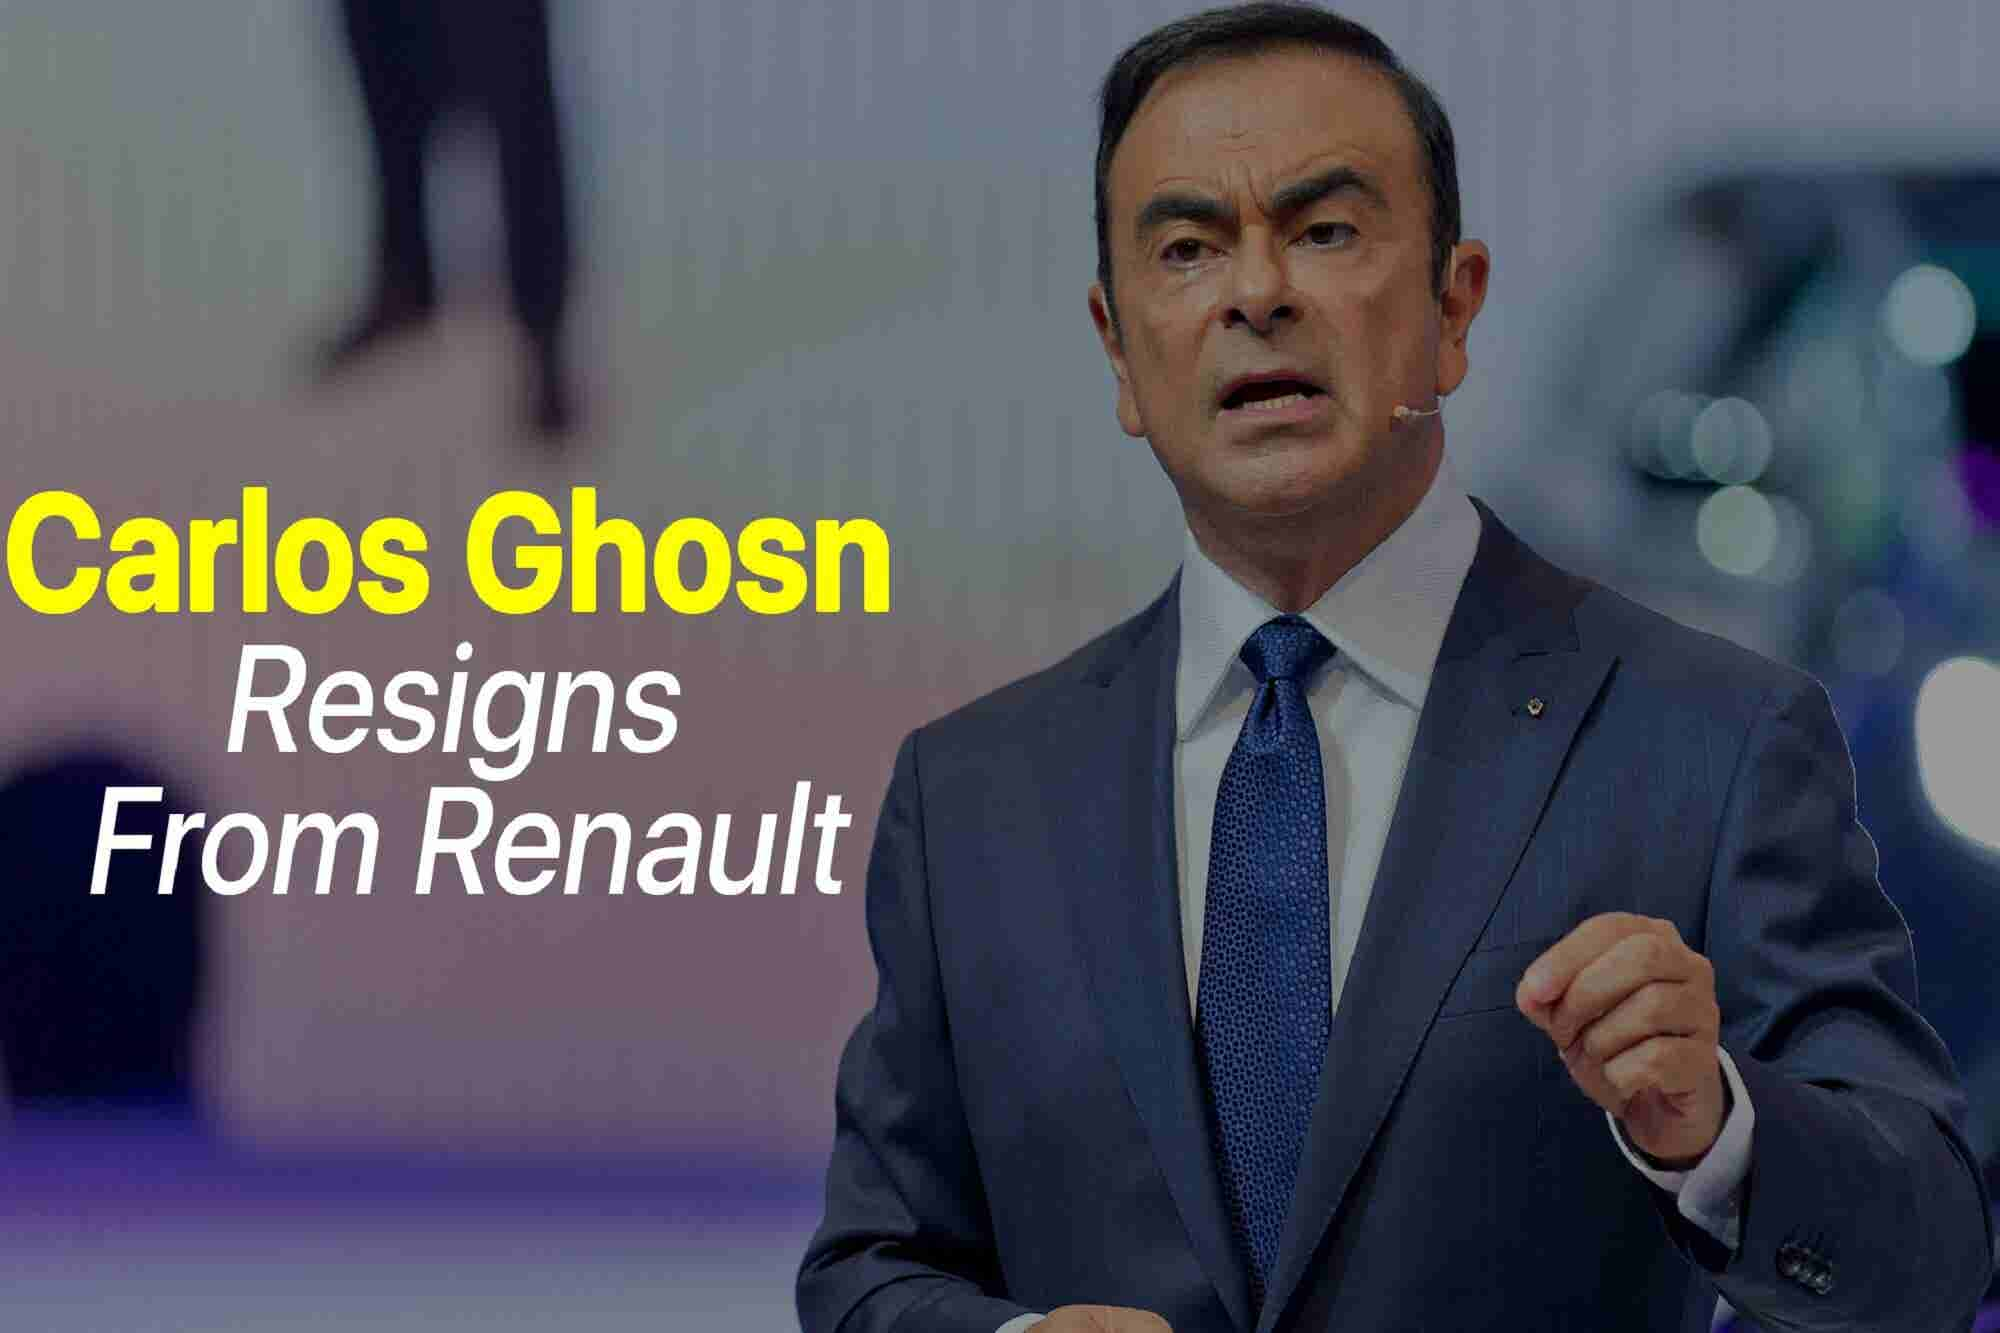 Friday Flashback: Carlos Ghosn Resigns From Renault Amid Misconduct Ch...